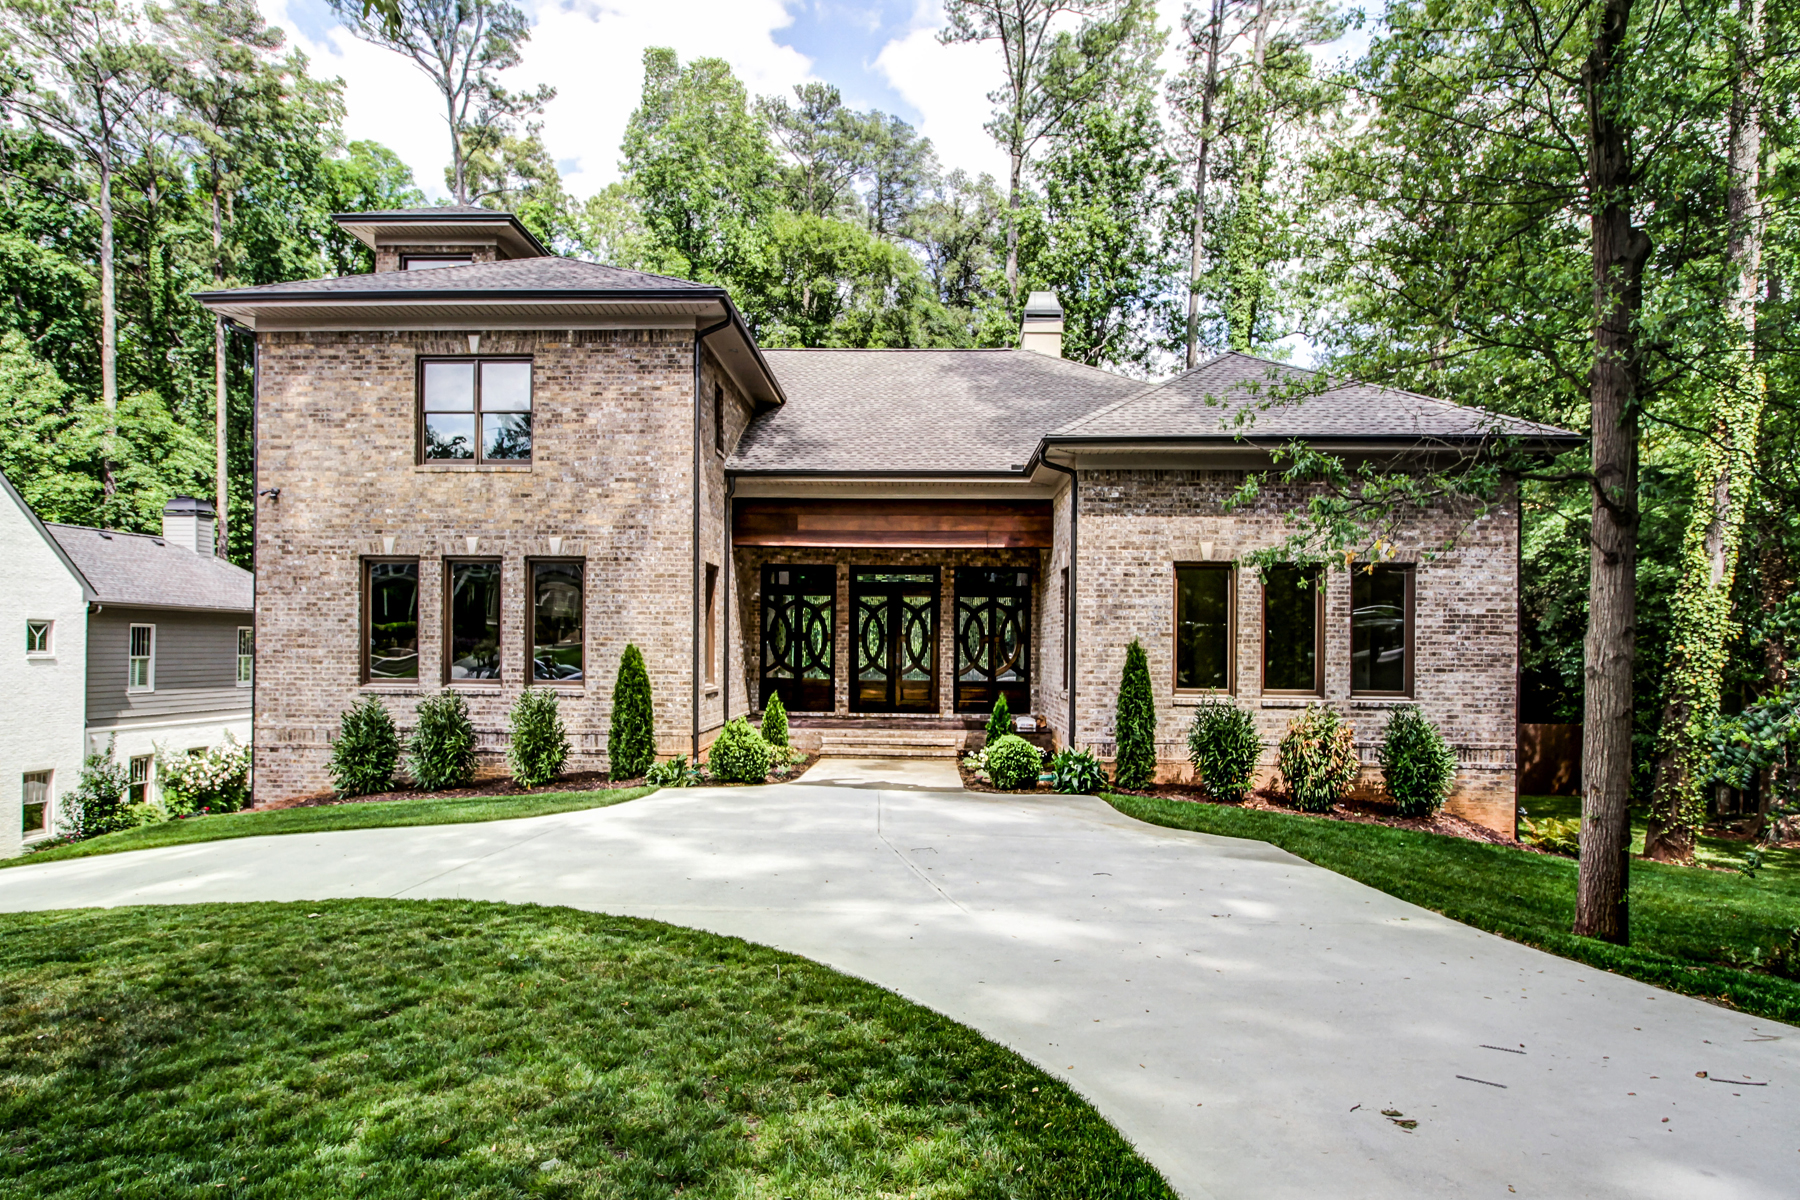 Single Family Home for Active at Sprawling New Home In Morningside With Resort-style Backyard 1801 Wellbourne Drive Atlanta, Georgia 30324 United States